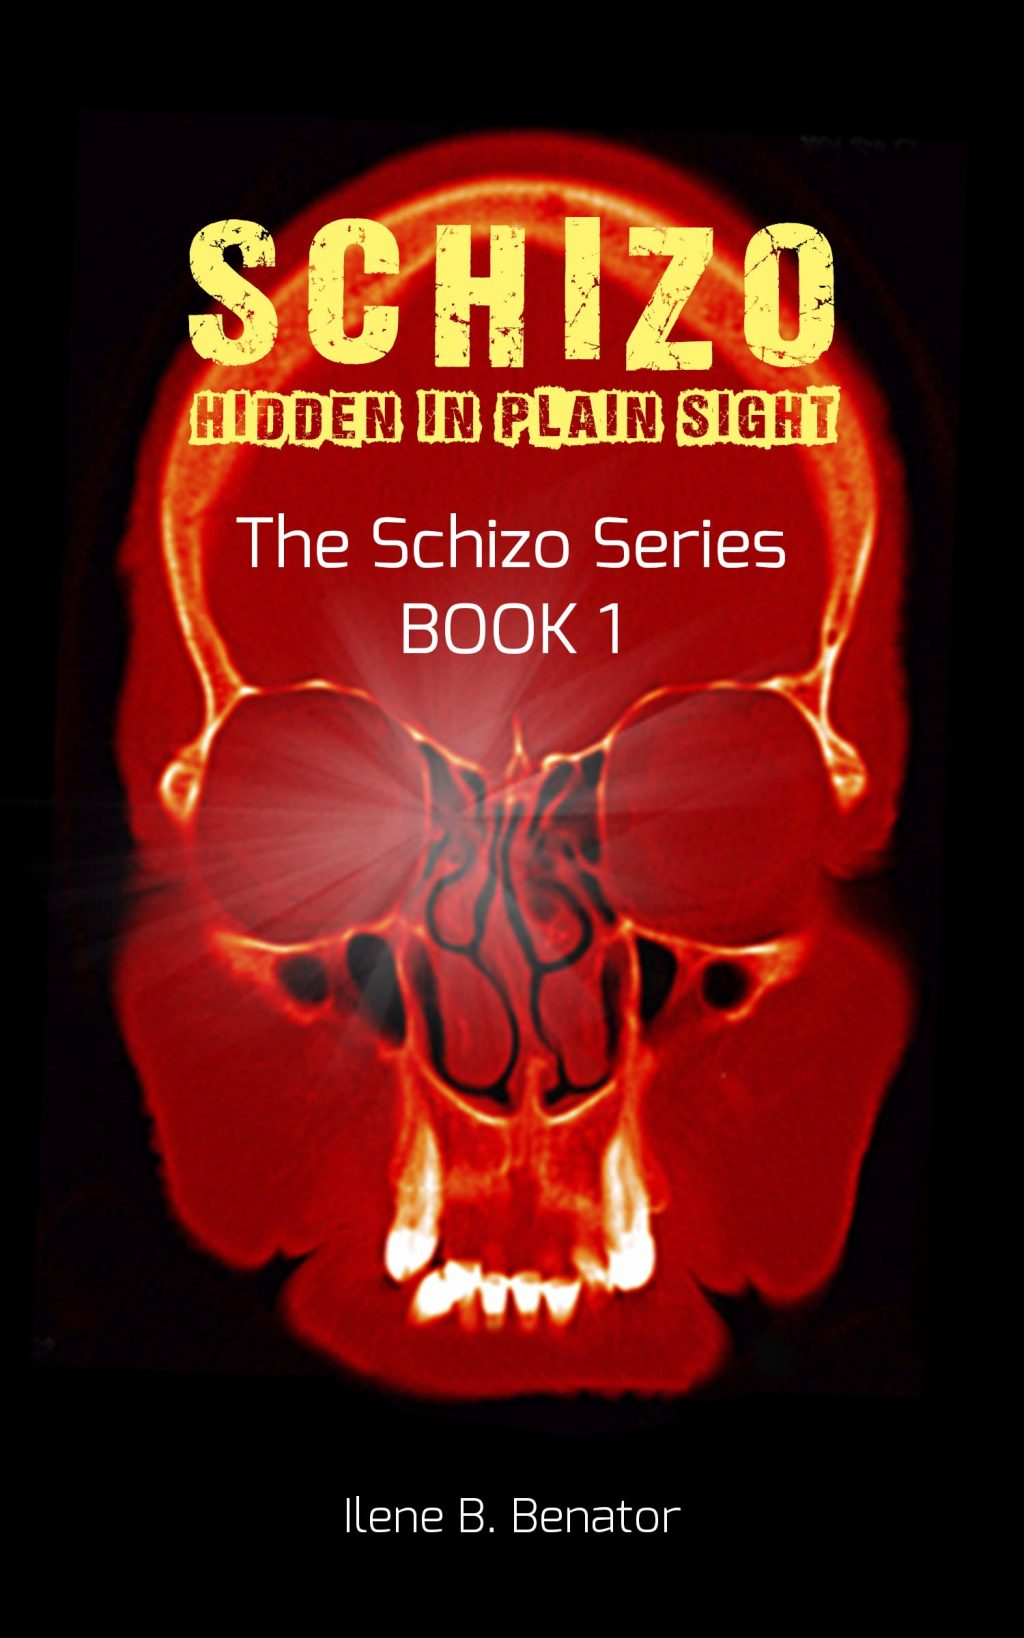 Schizo: Hidden in Plain Sight By Ilene B. Benator